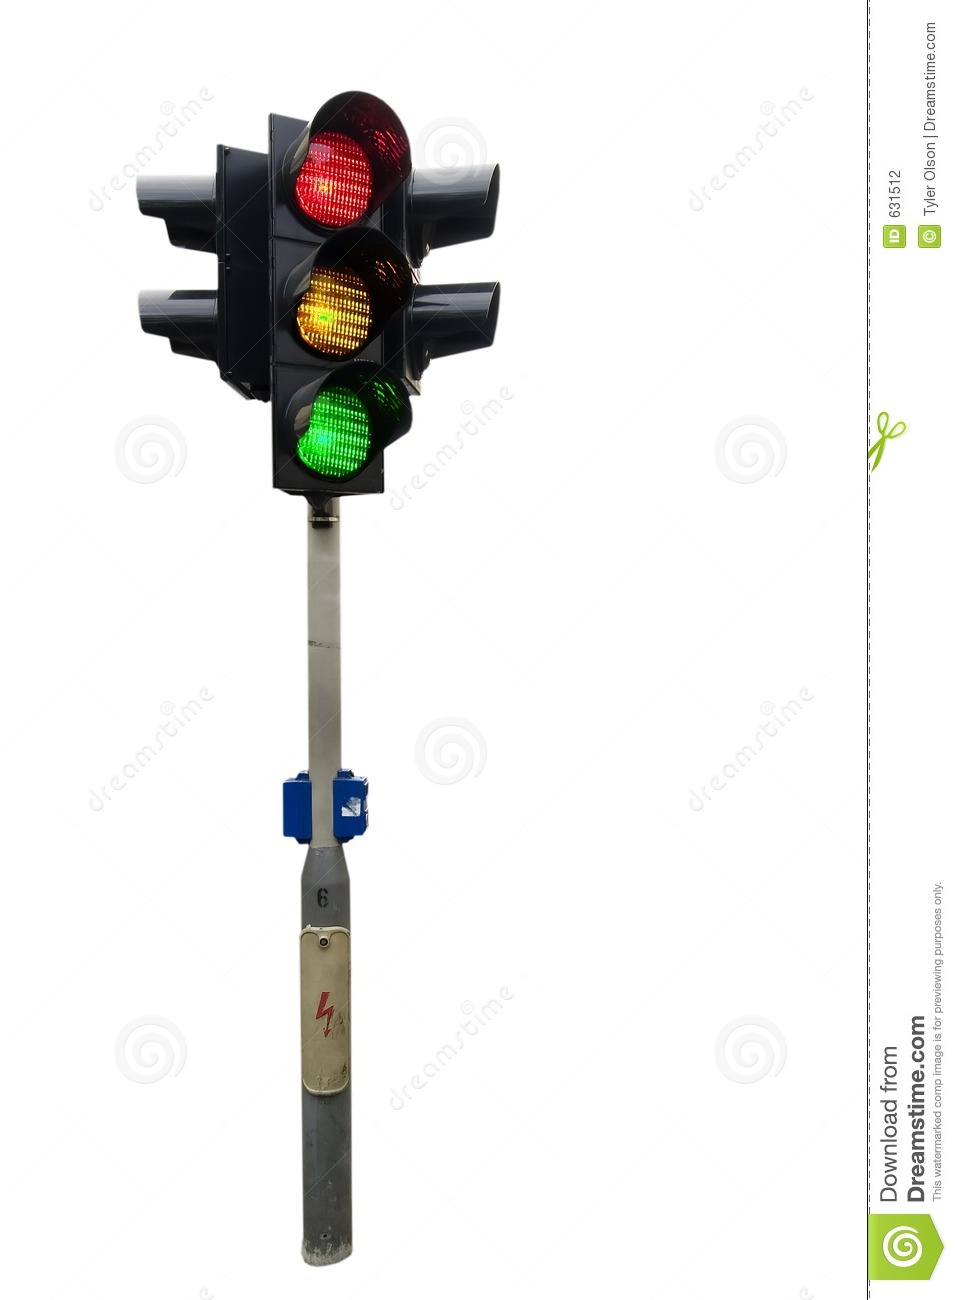 Traffic Light Post for Real Traffic Lights  111bof